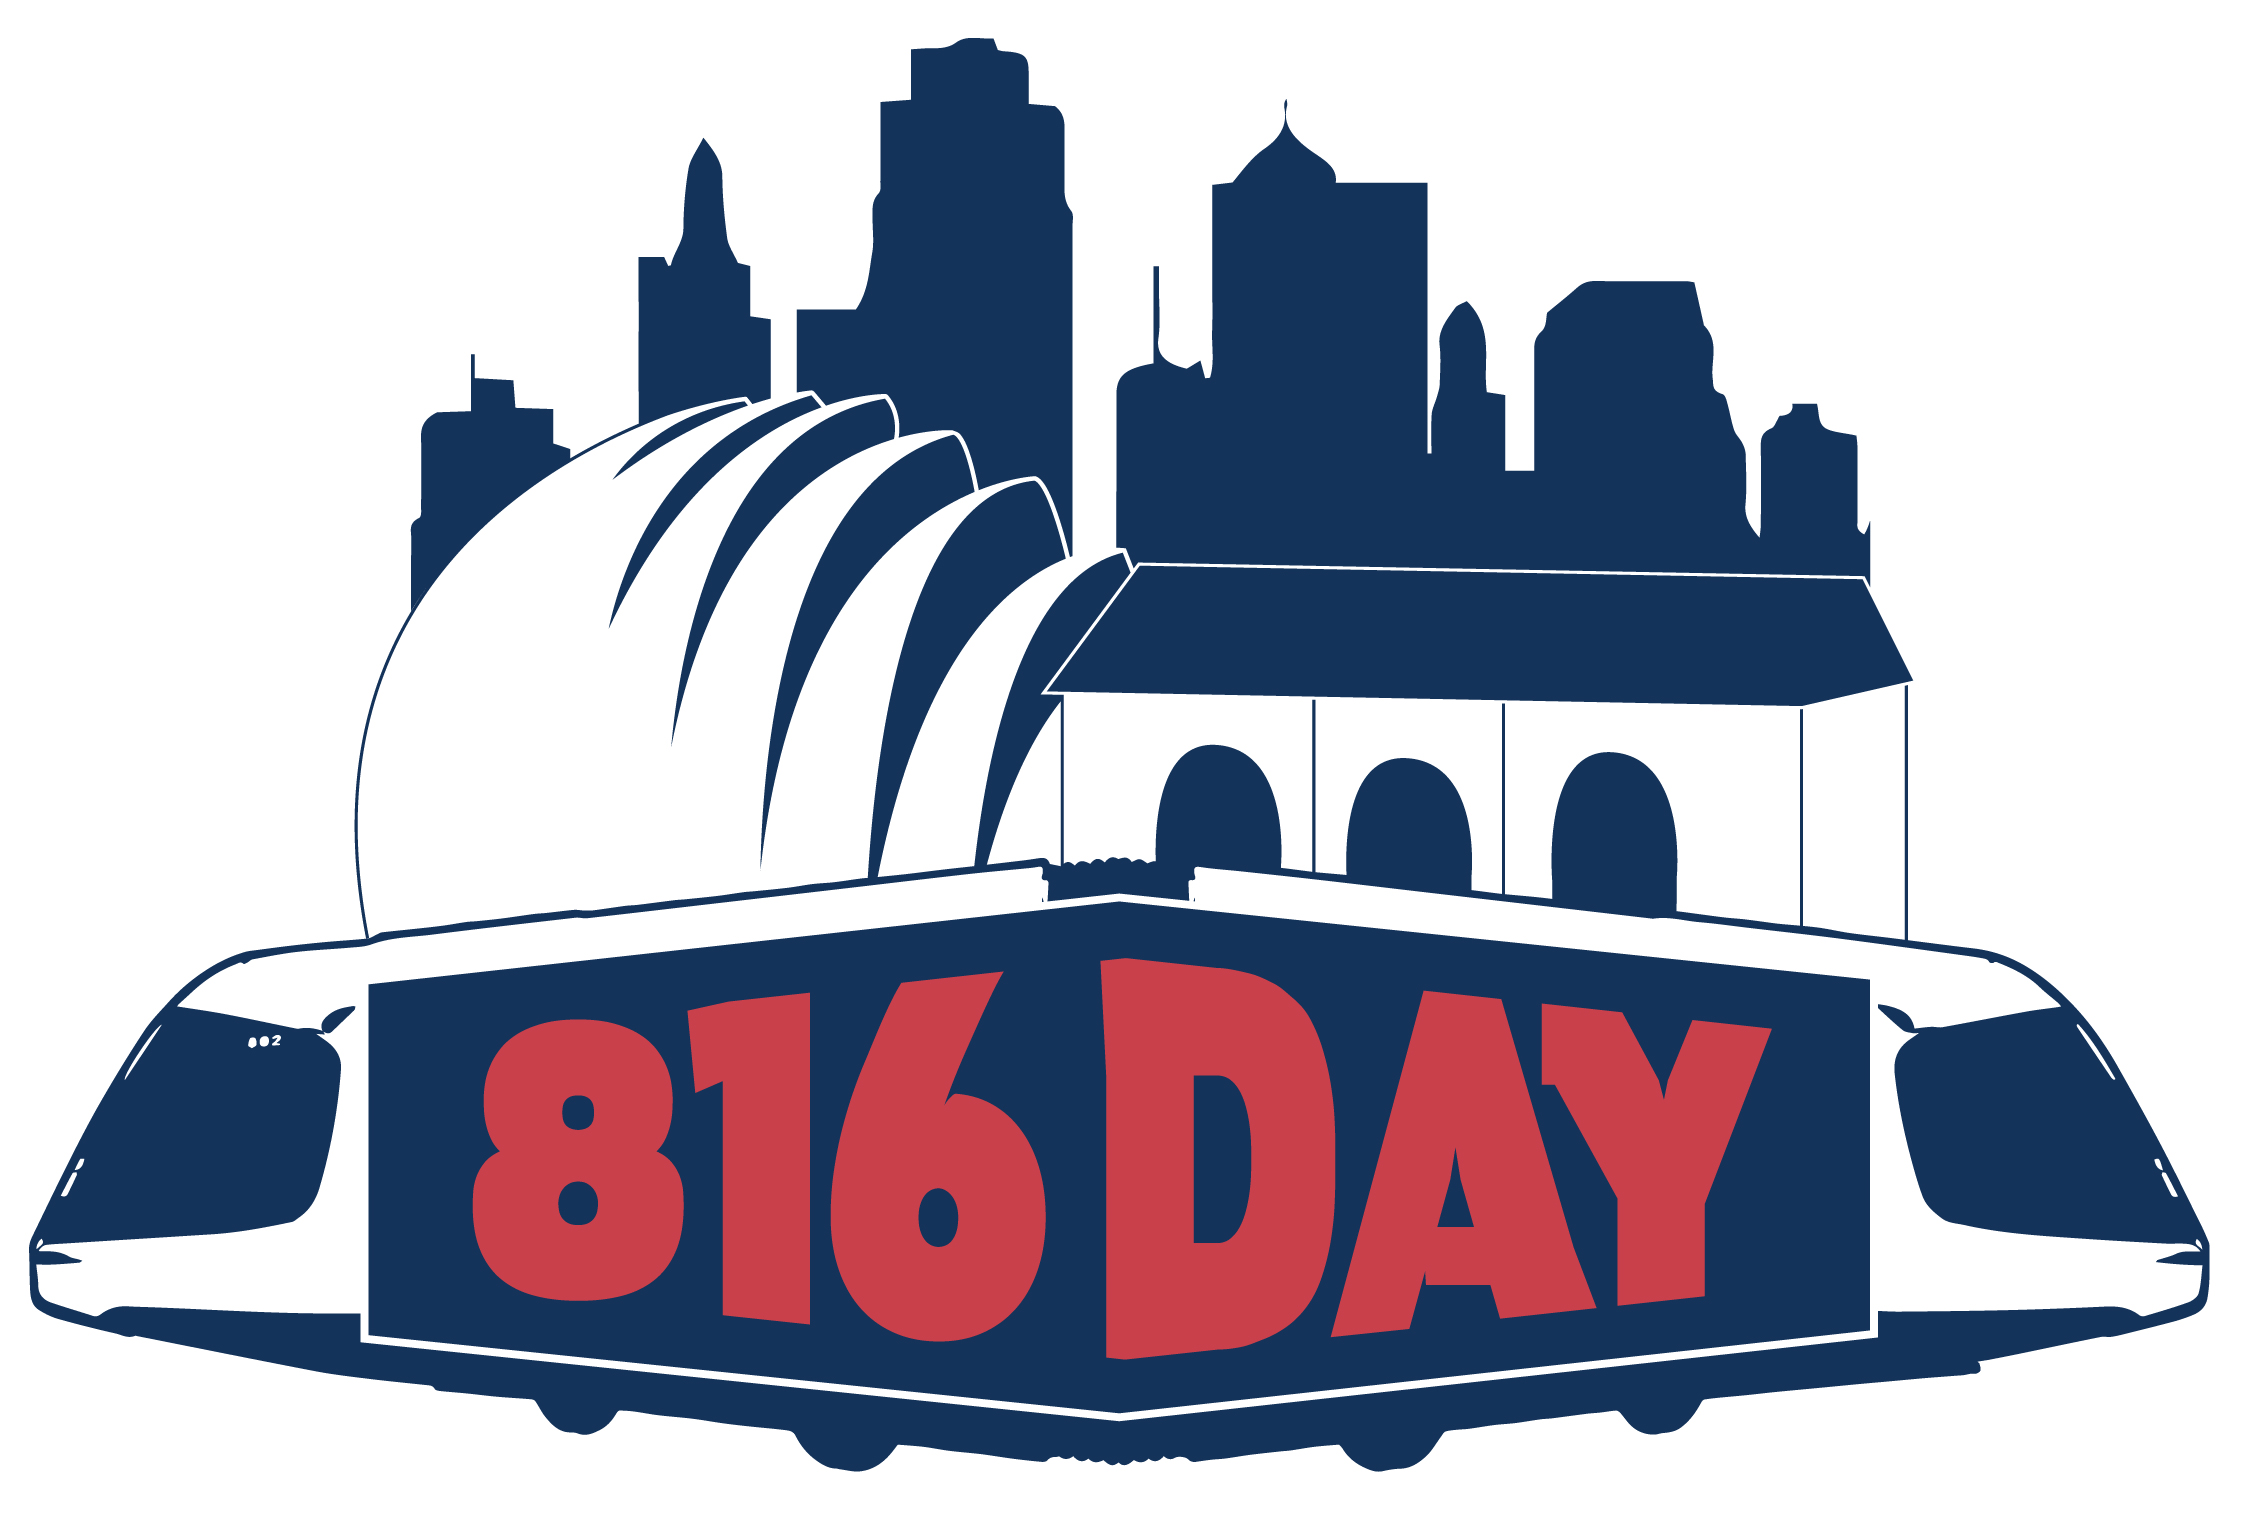 816 Day